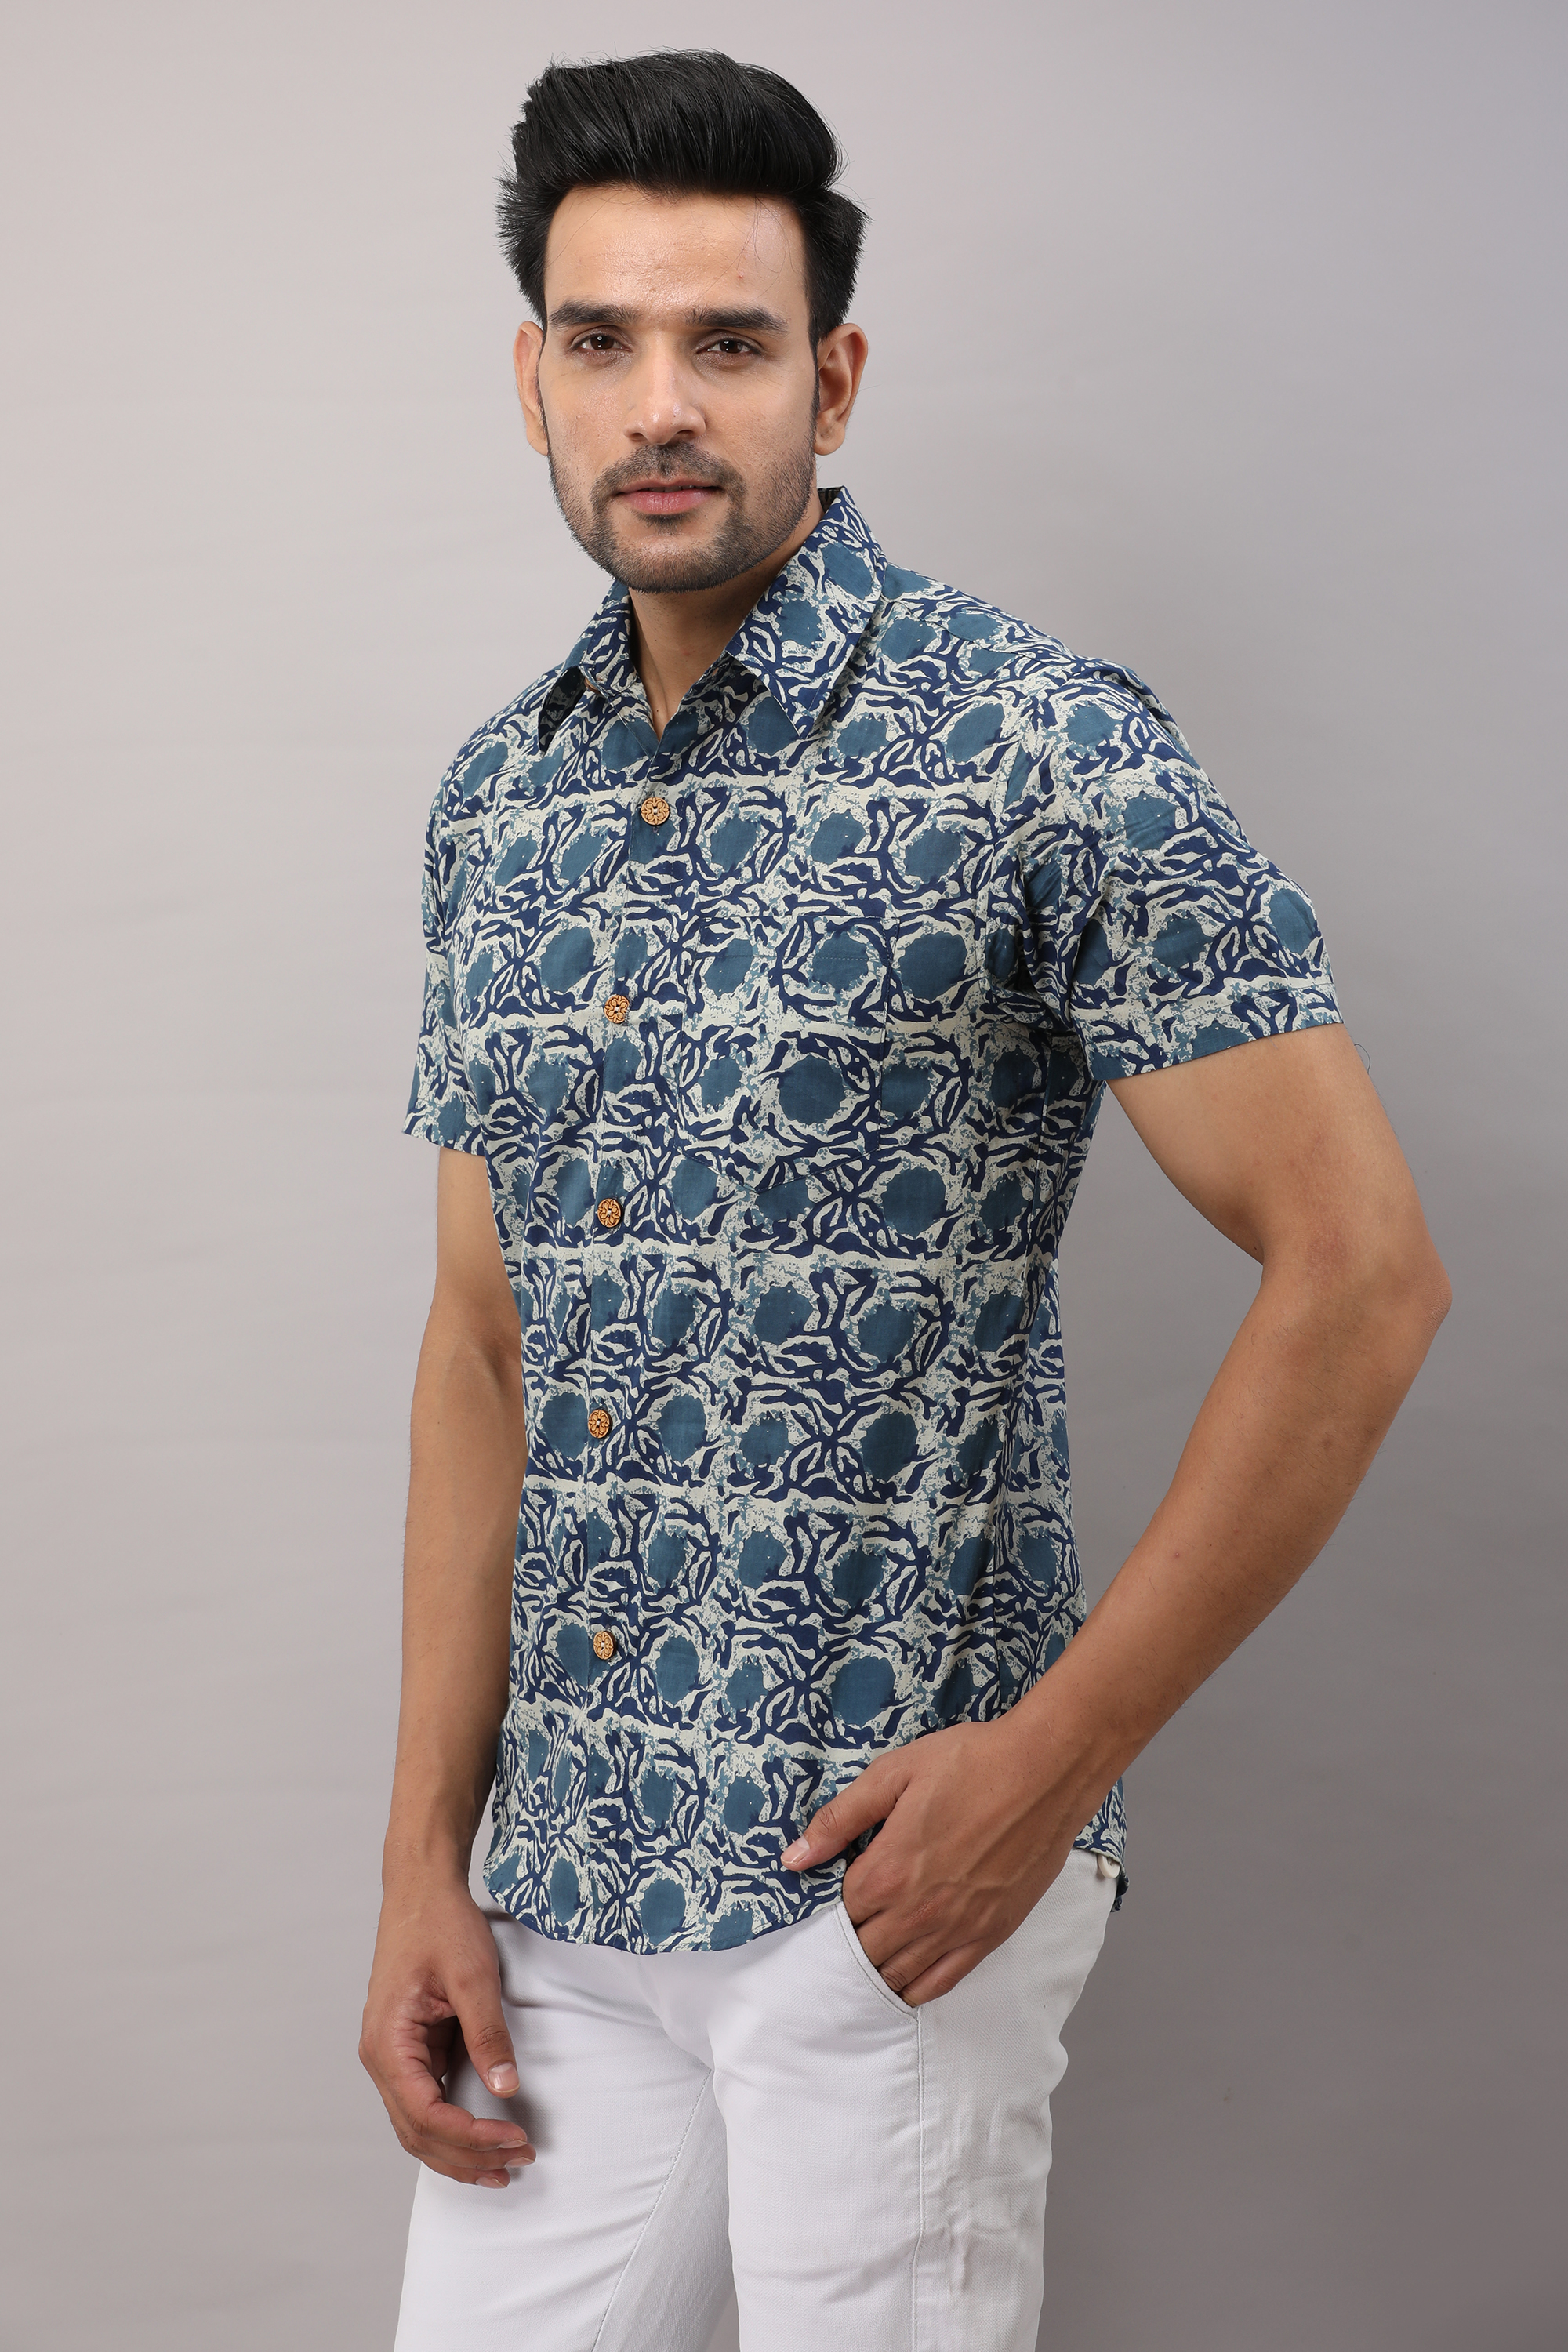 FrionKandy Cotton Floral Casual Blue Regular Shirt For Men - 2XL